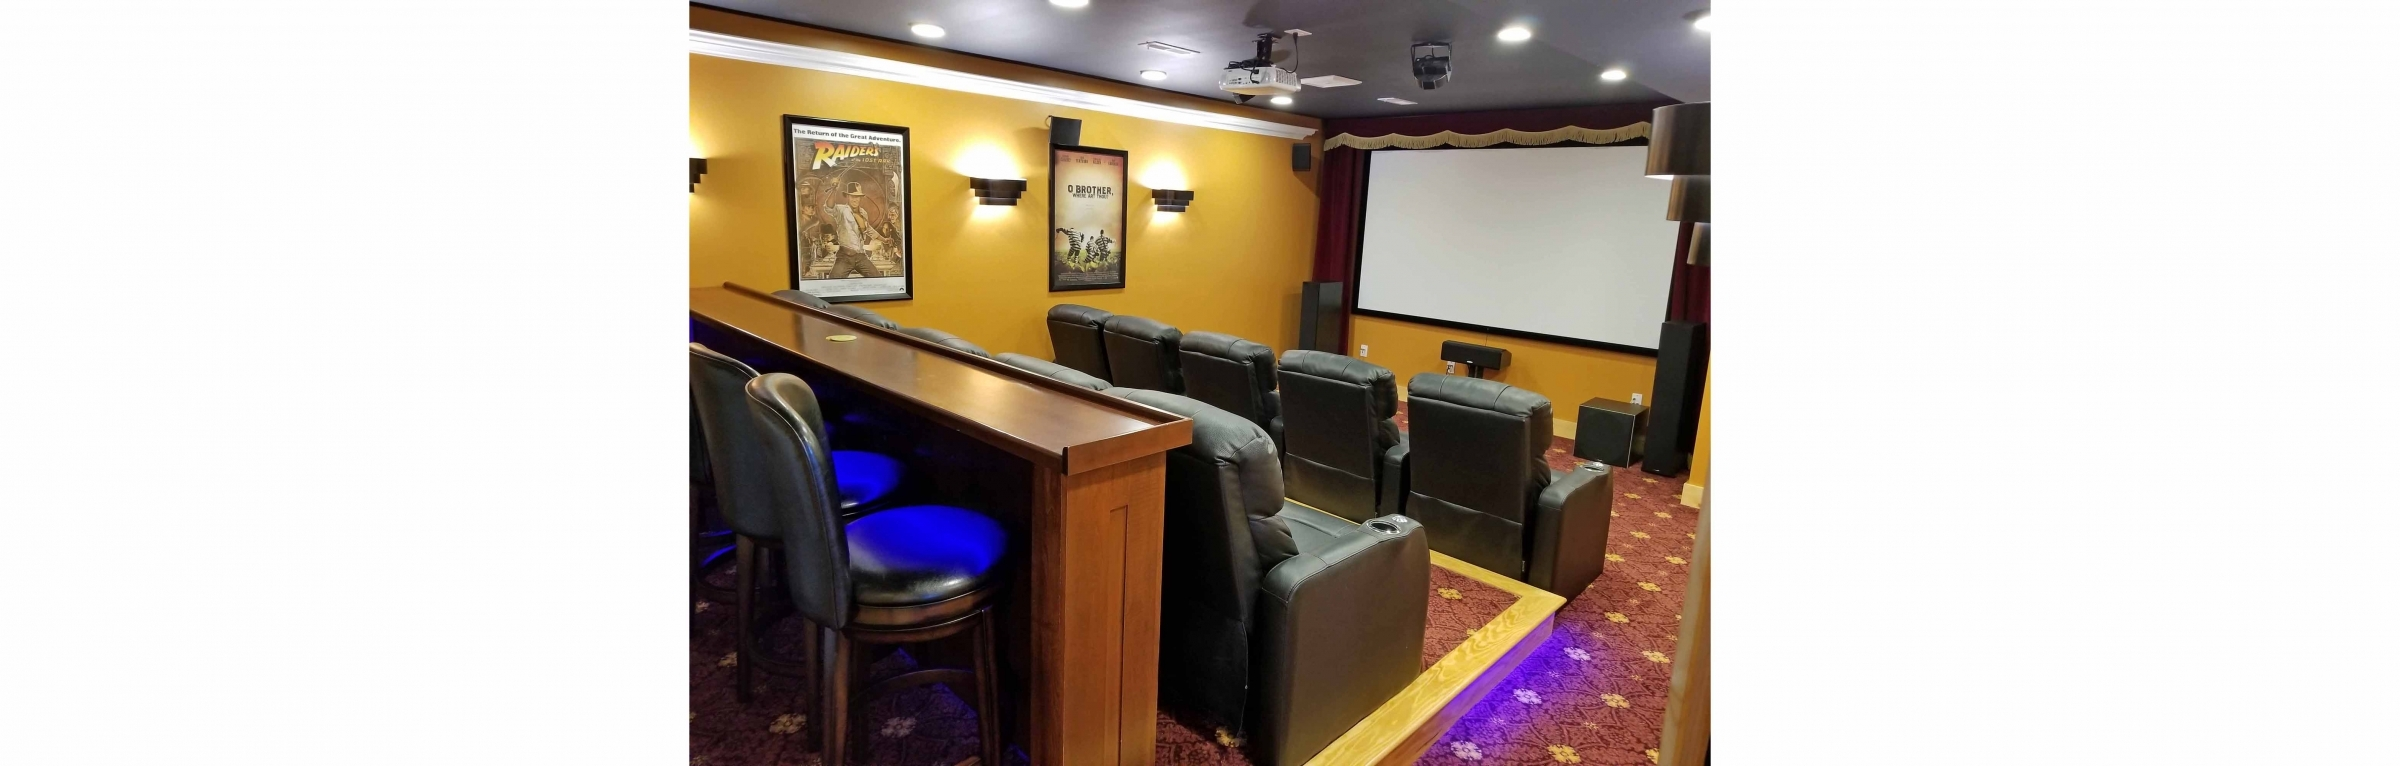 picture of custom home theater in Heron Point on Smith Mountain Lake, Timber Ridge Craftsmen Inc home builder in Moneta Virginia